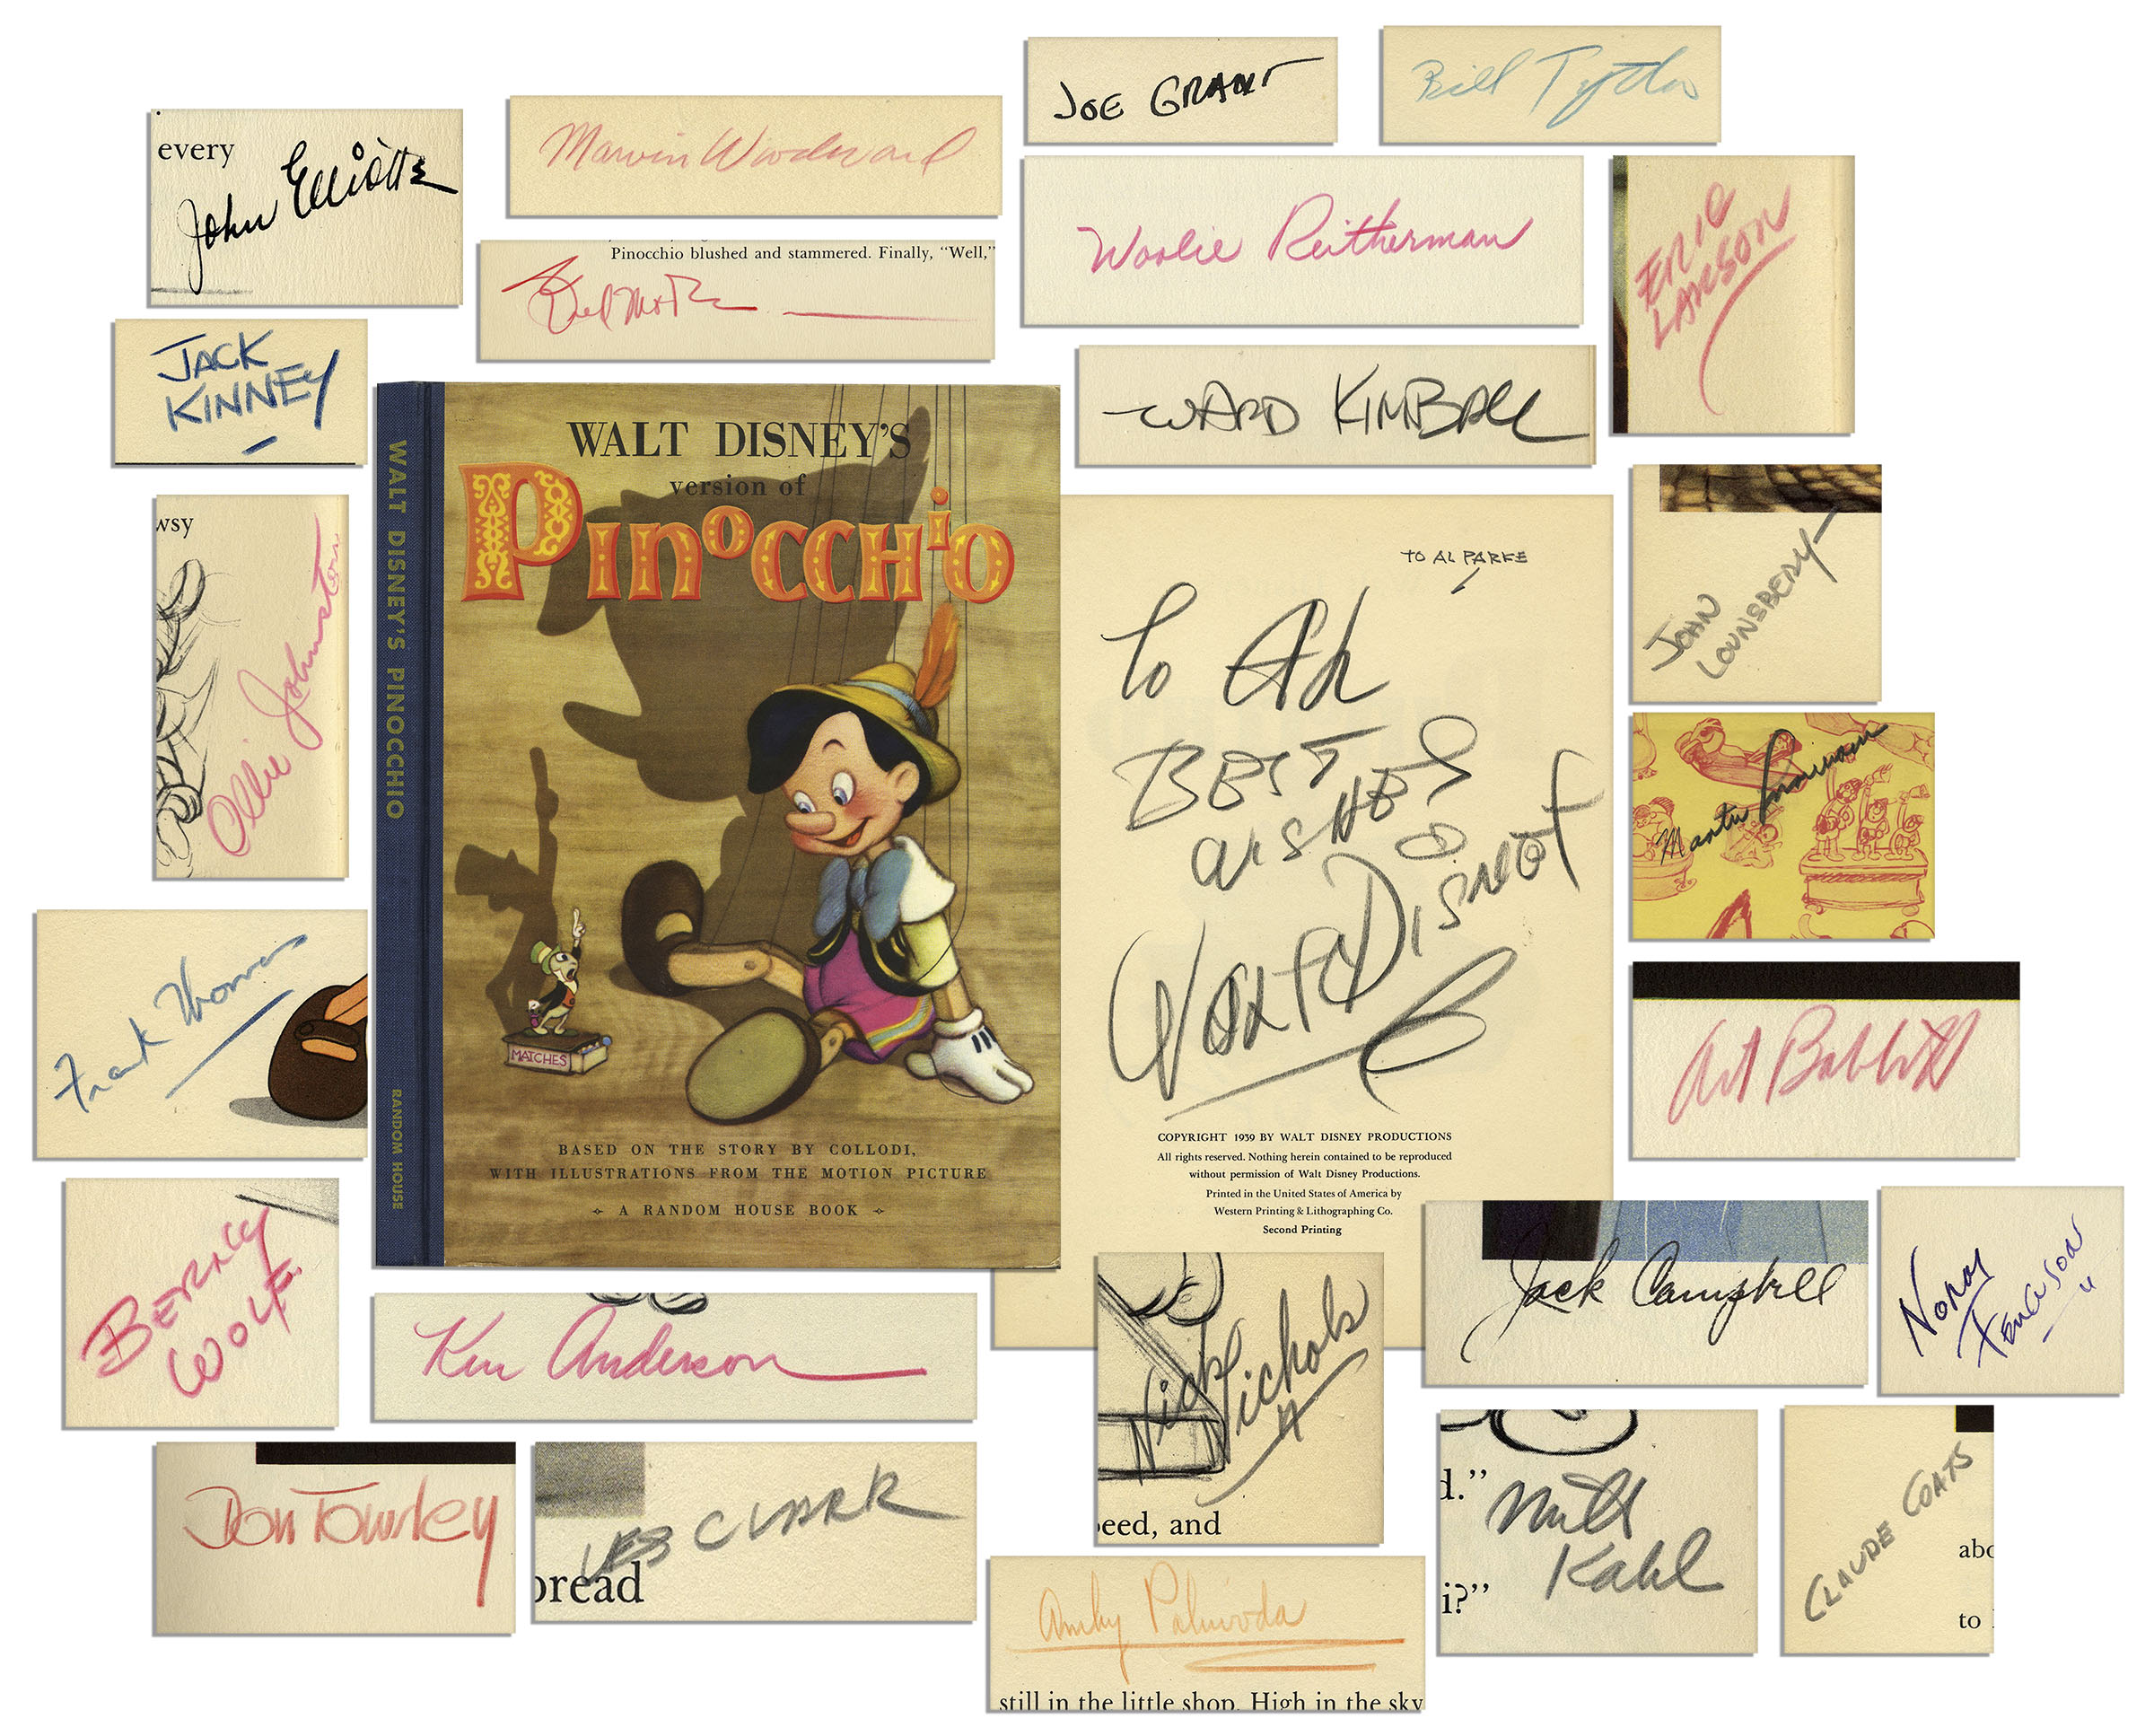 Walt Disney Autograph Walt Disney ''Pinocchio'' Book Signed -- With The Signatures of More Than 20 Early Disney Animators